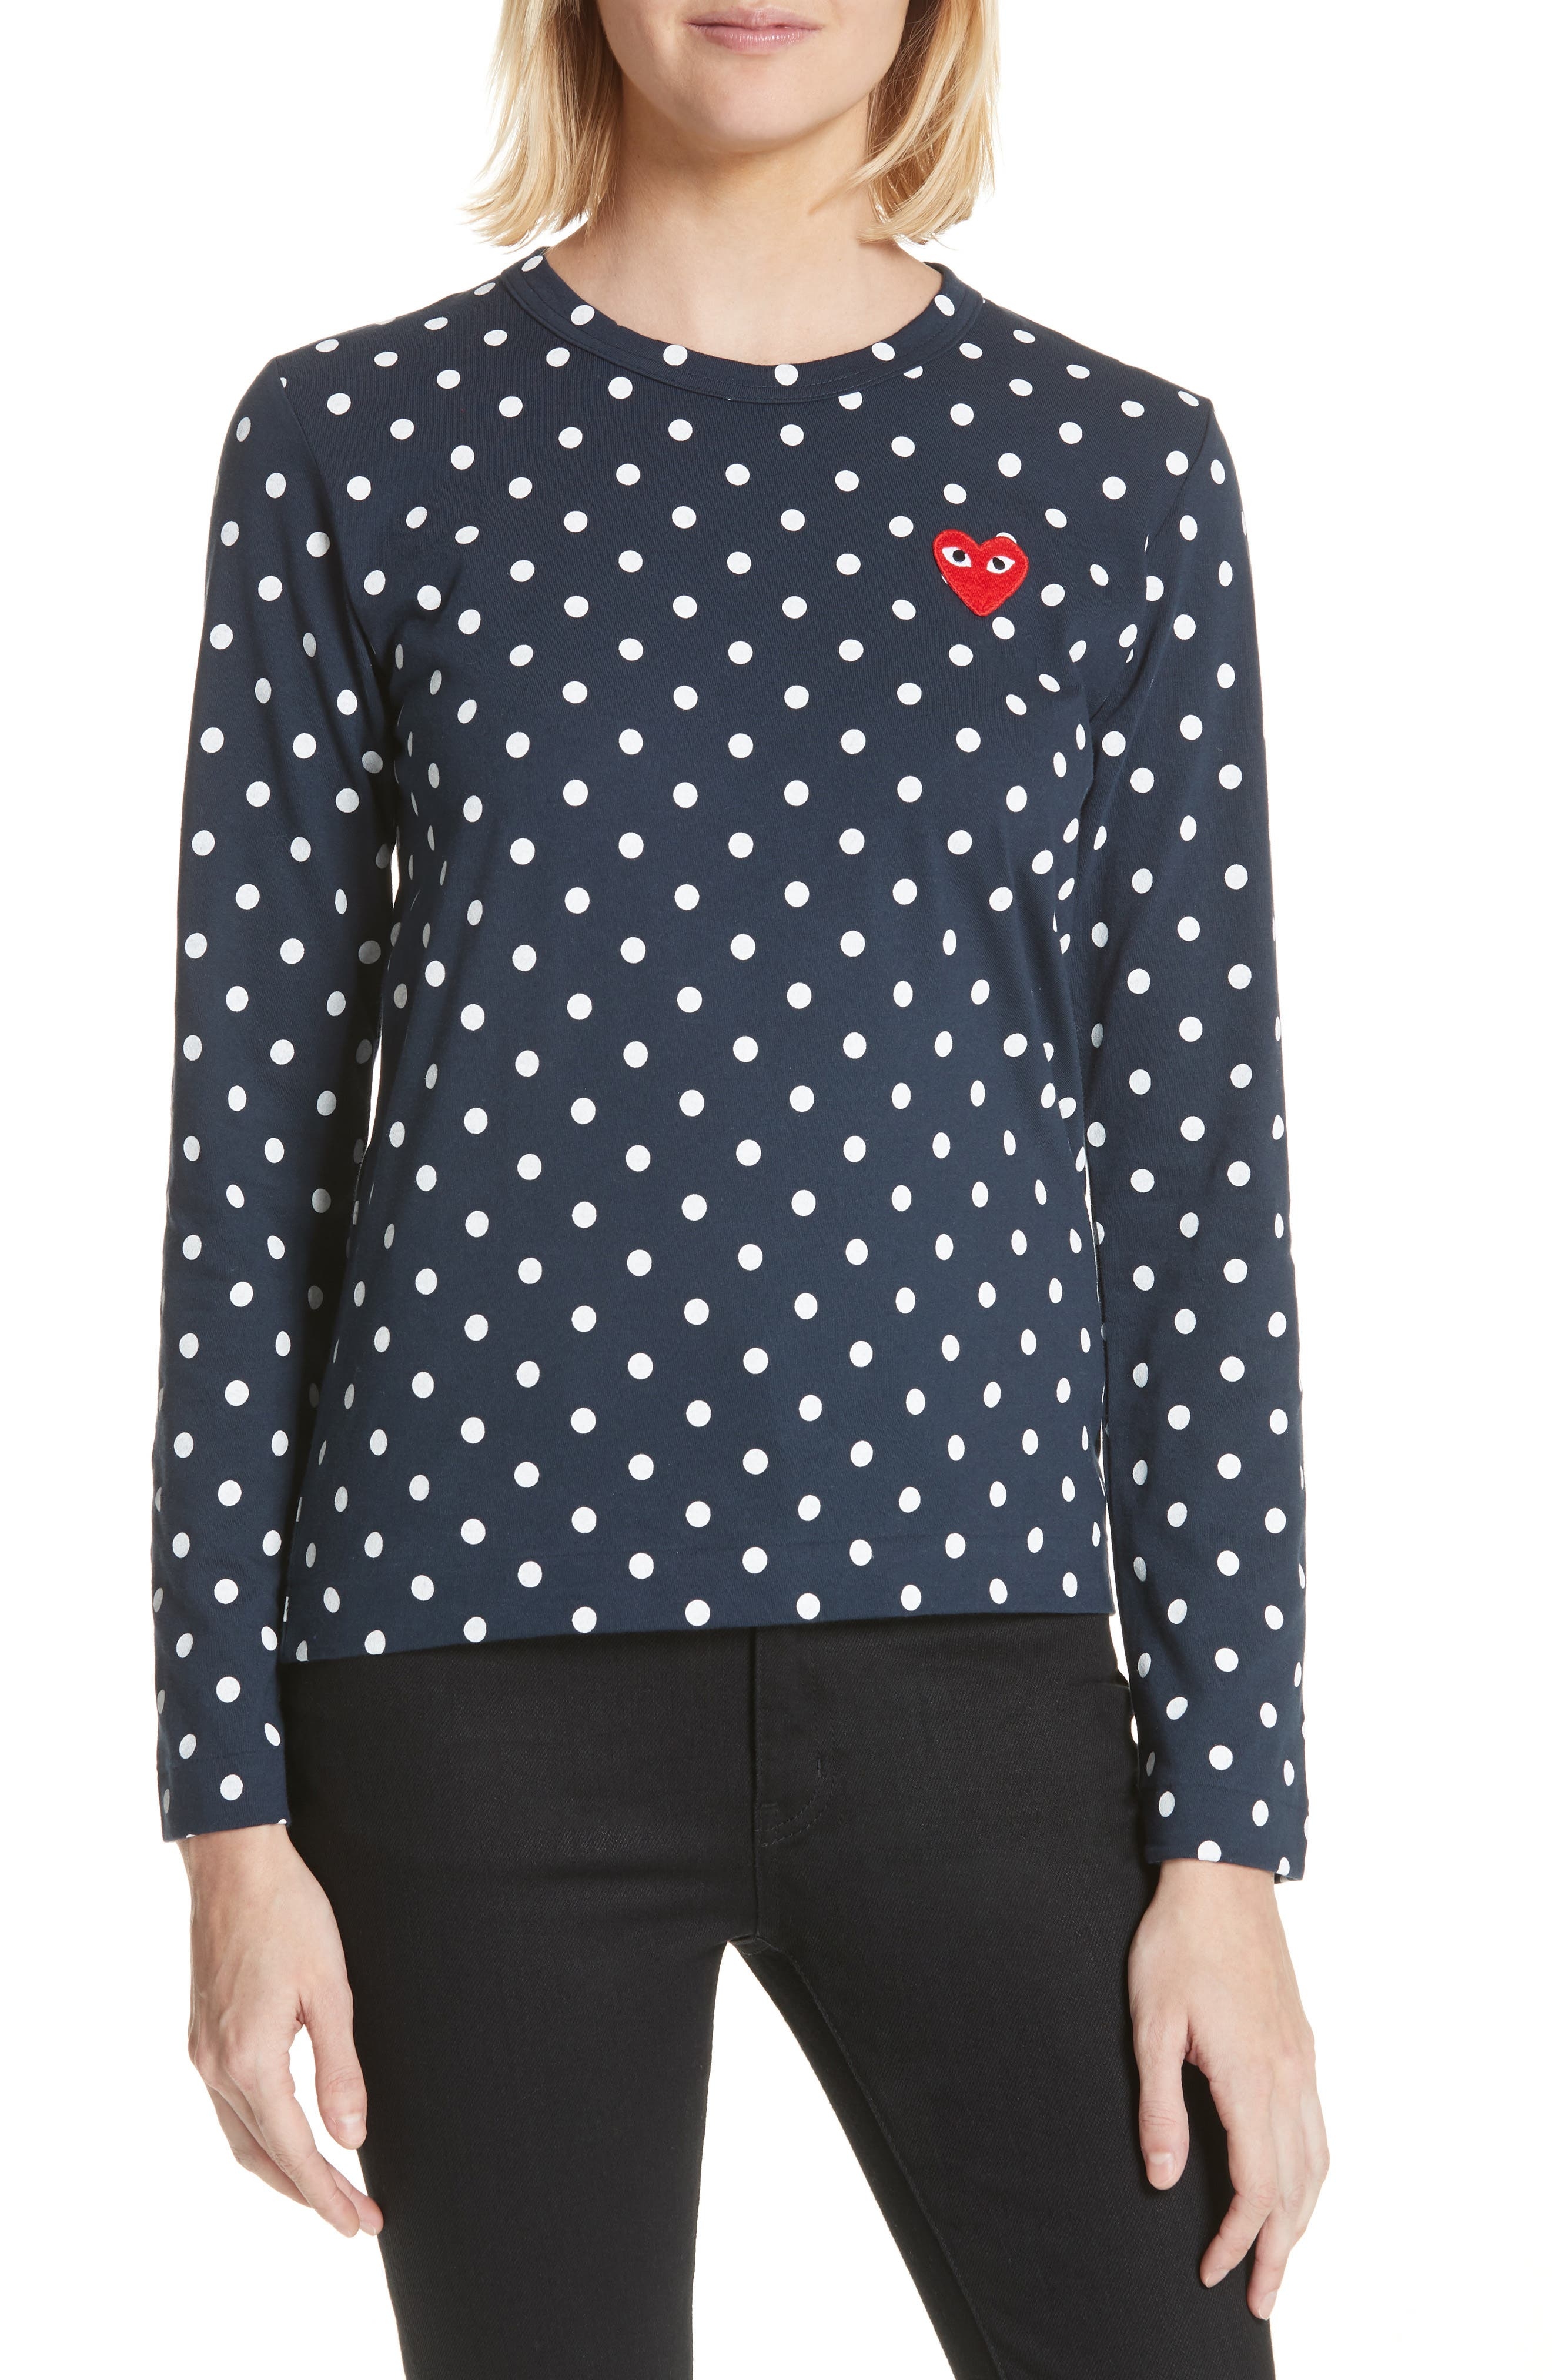 Comme des Garçons PLAY Red Heart Polka Dot Tee,                         Main,                         color, Navy/ White